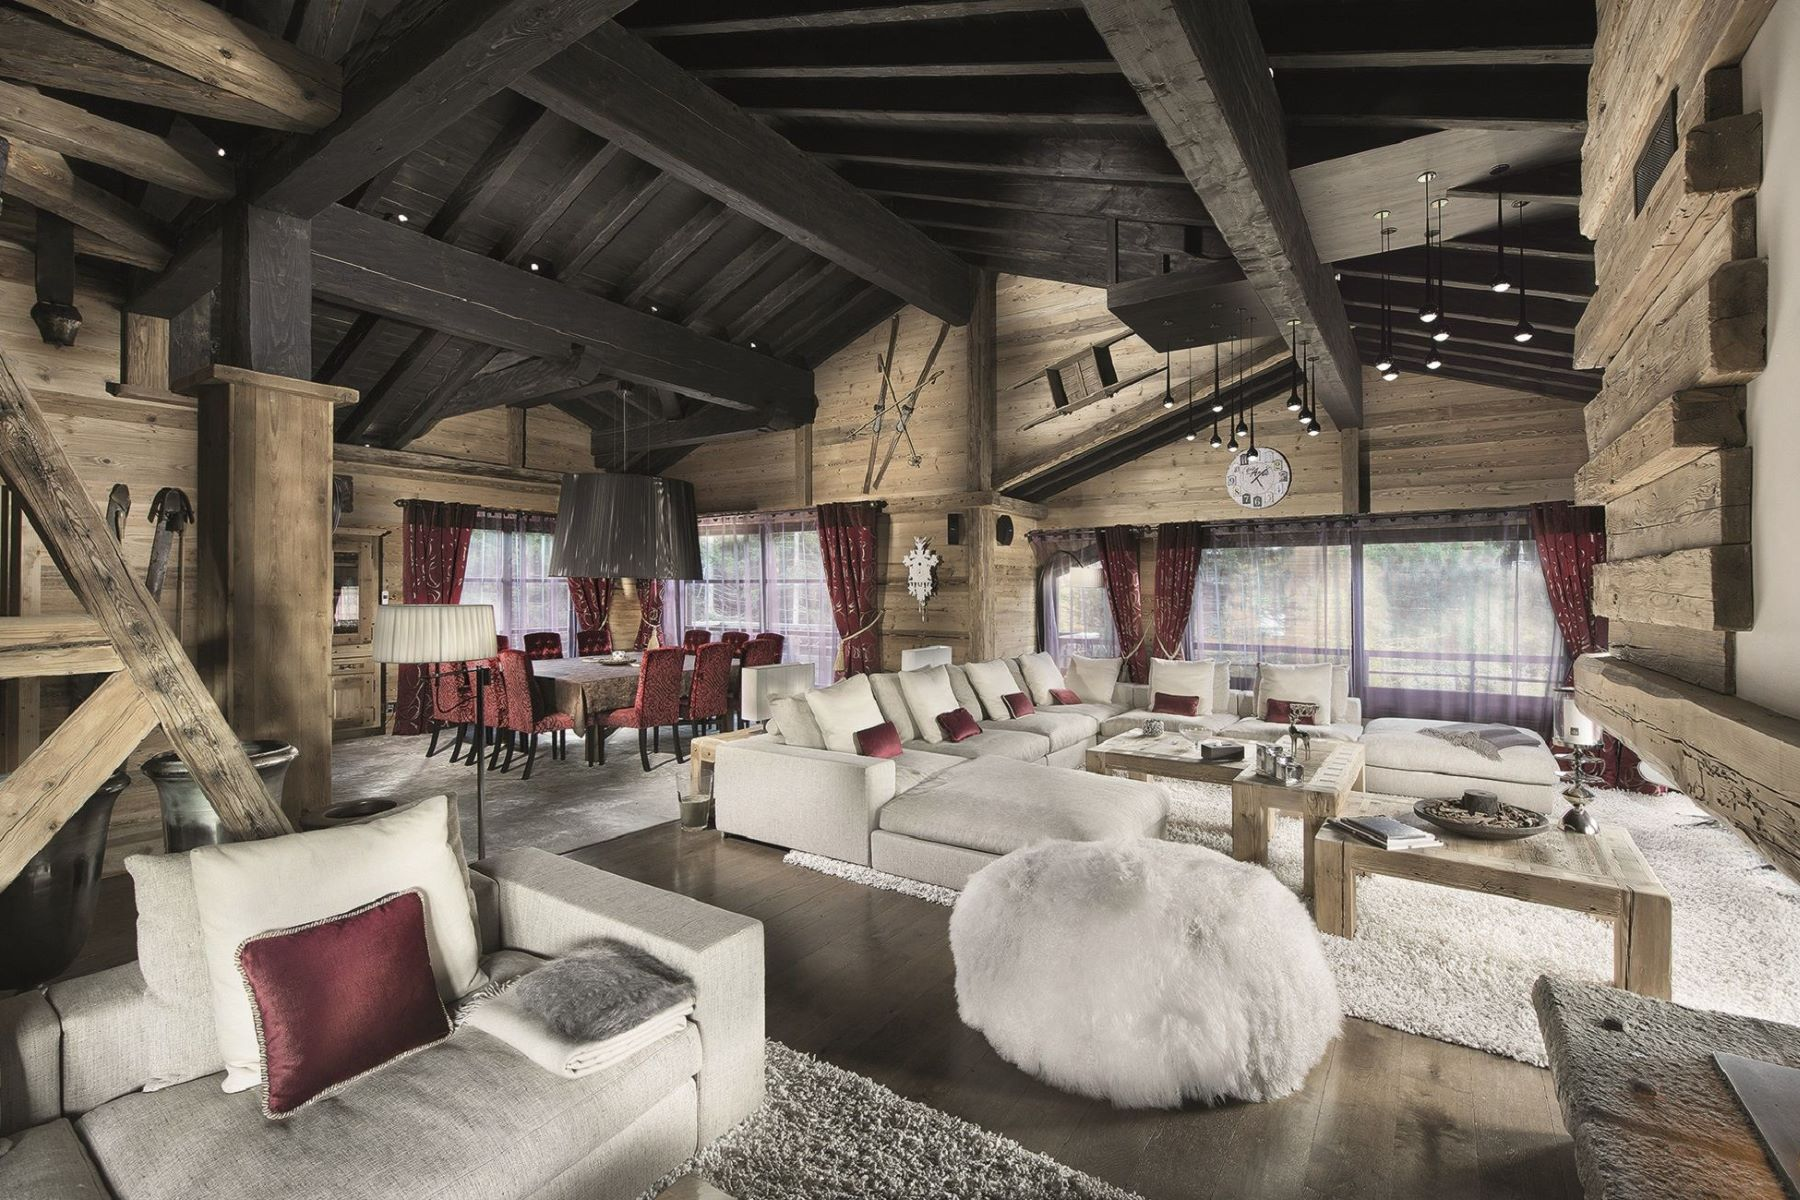 Single Family Home for Active at Luxury Chalet Courchevel Courchevel, Rhone-Alpes 73120 France